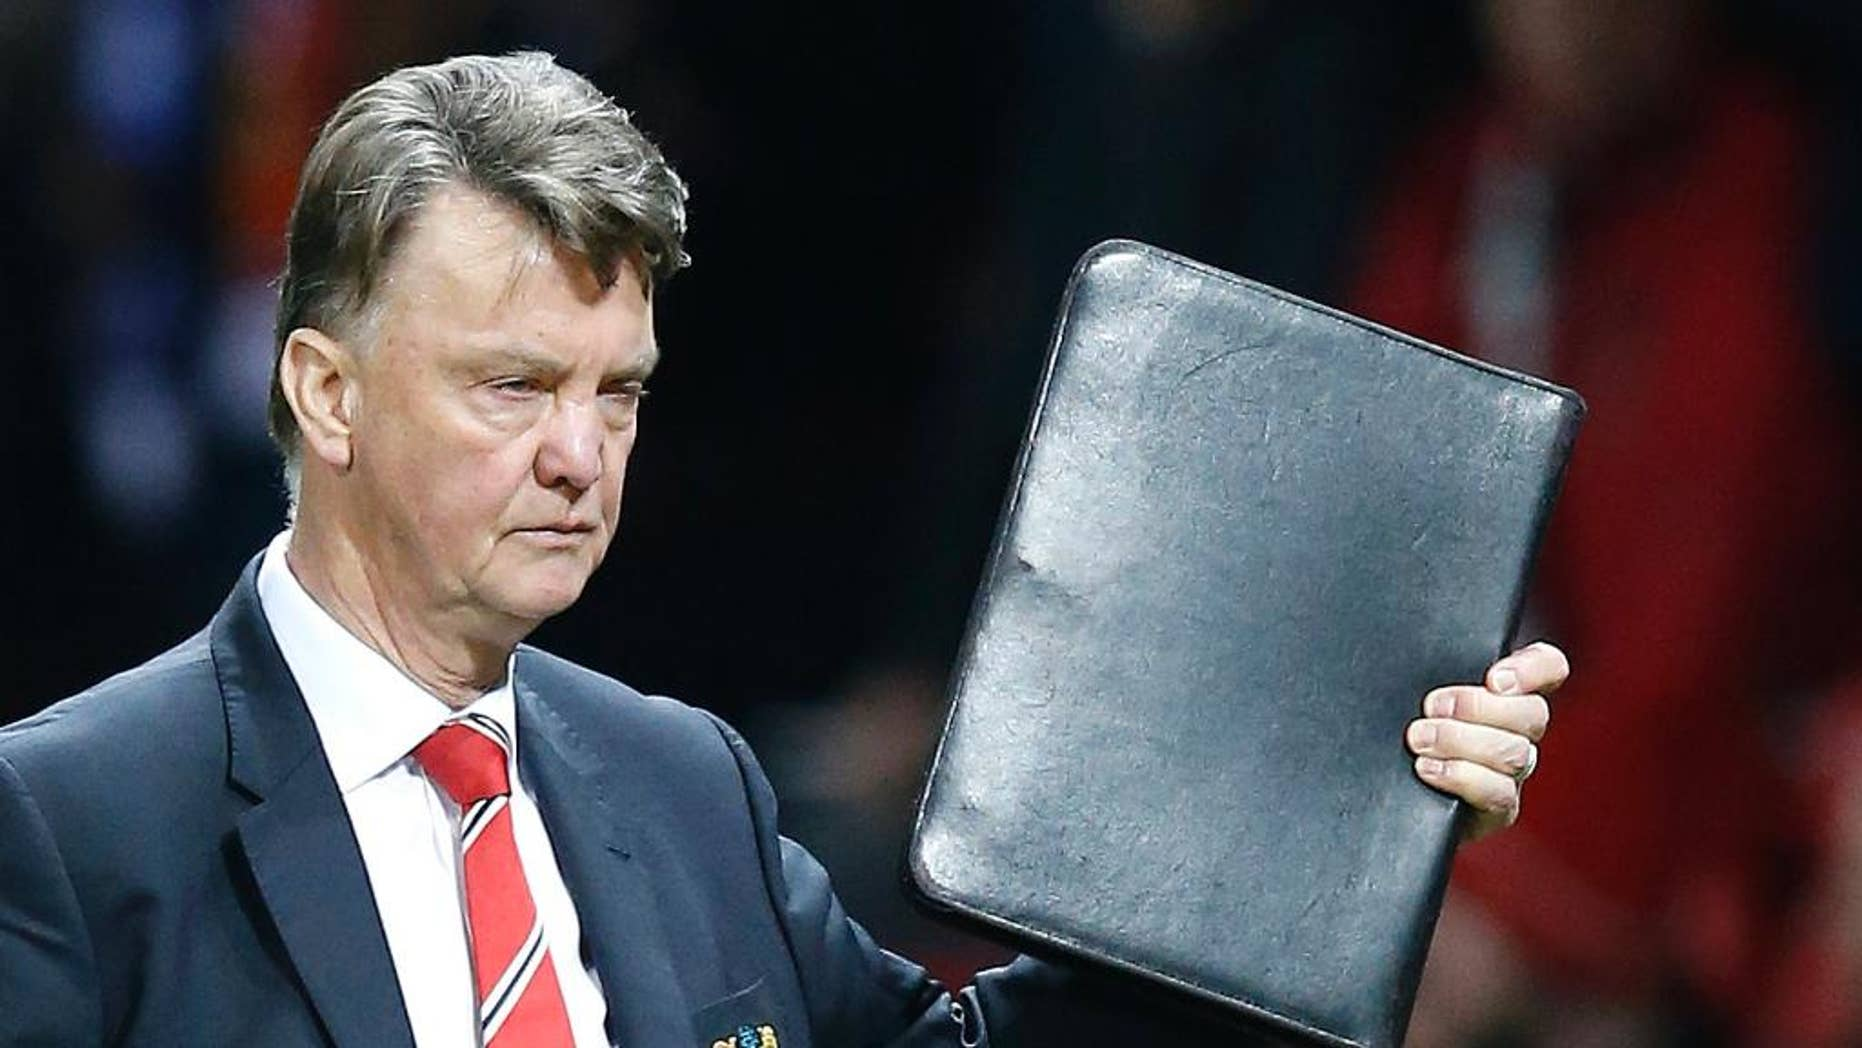 Manchester United's manager Louis van Gaal leaves at the end of the English Premier League soccer match between Manchester United and Chelsea at Old Trafford Stadium, Manchester, England, Monday, Dec. 28, 2015. (AP Photo/Jon Super)